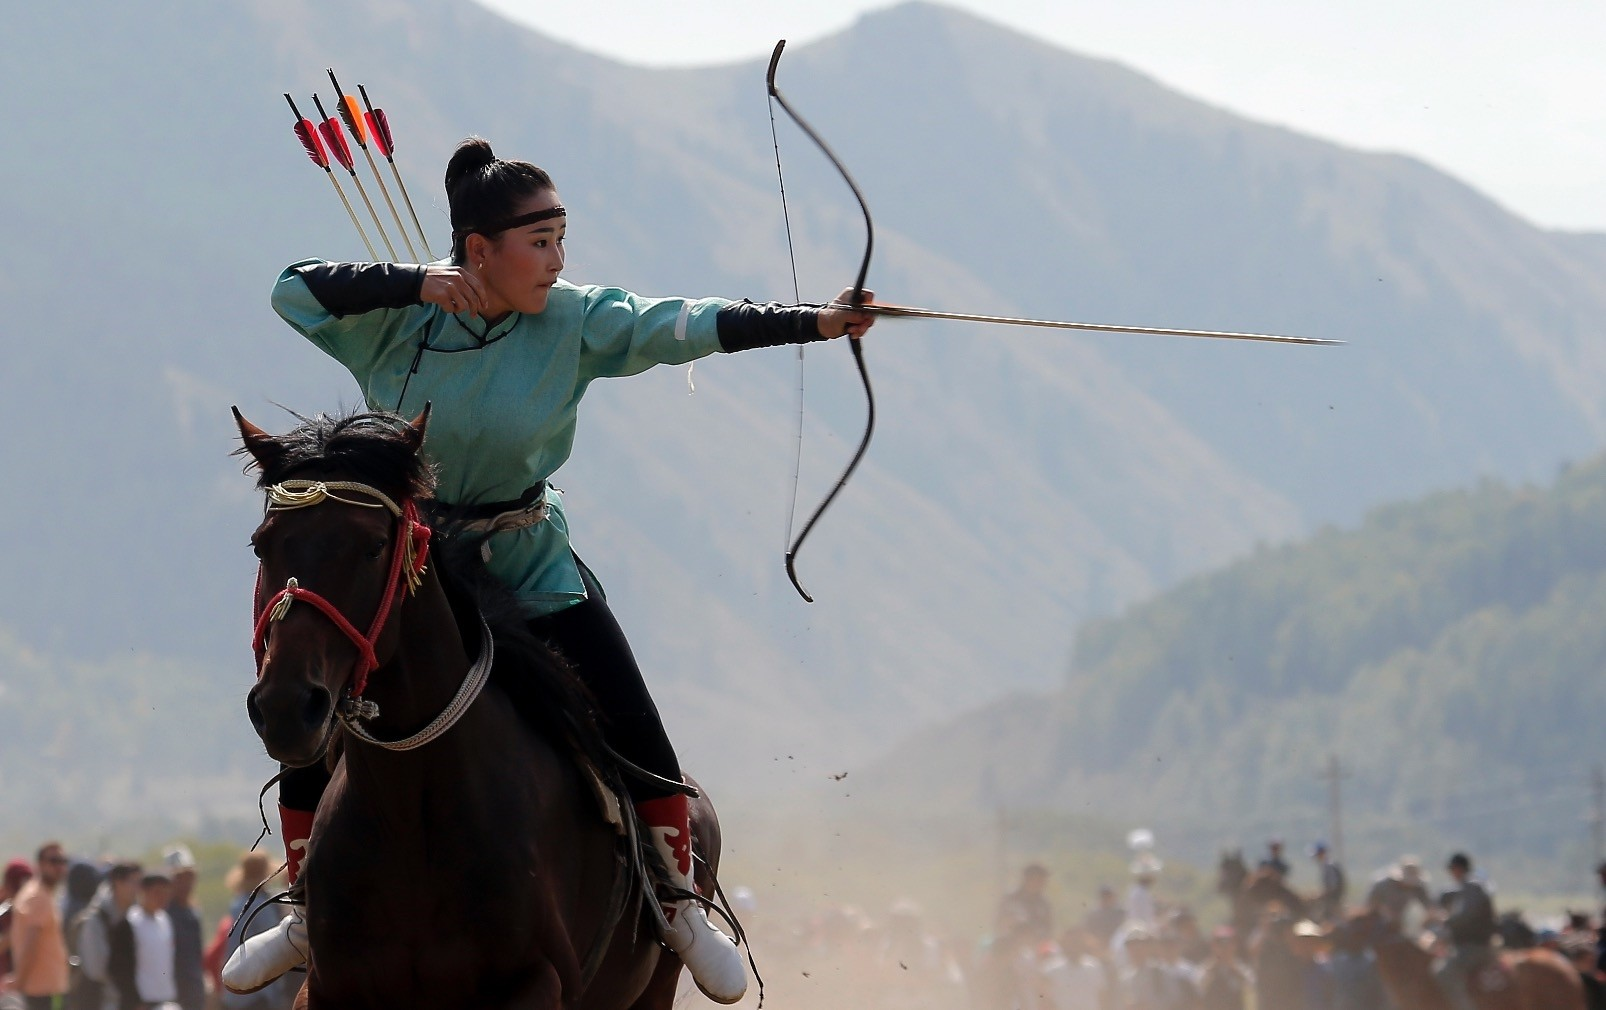 A woman takes part in an archery event during the 3rd World Nomad Games at Issyk-Kul lake.